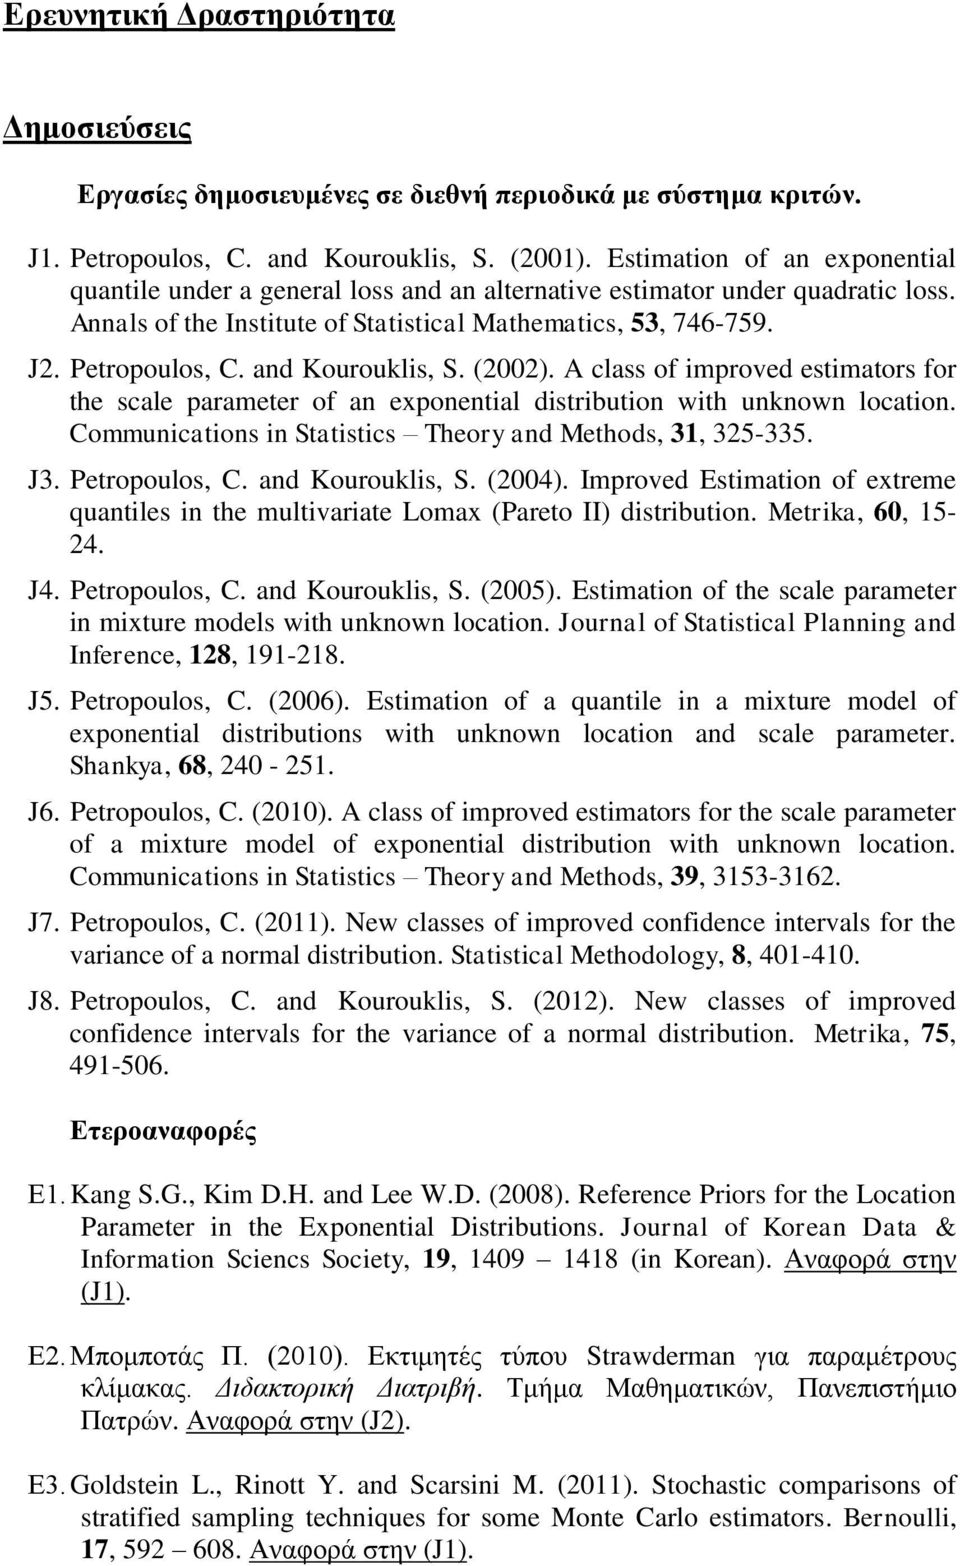 and Kourouklis, S. (2002). A class of improved estimators for the scale parameter of an exponential distribution with unknown location. Communications in Statistics Theory and Methods, 31, 325-335.